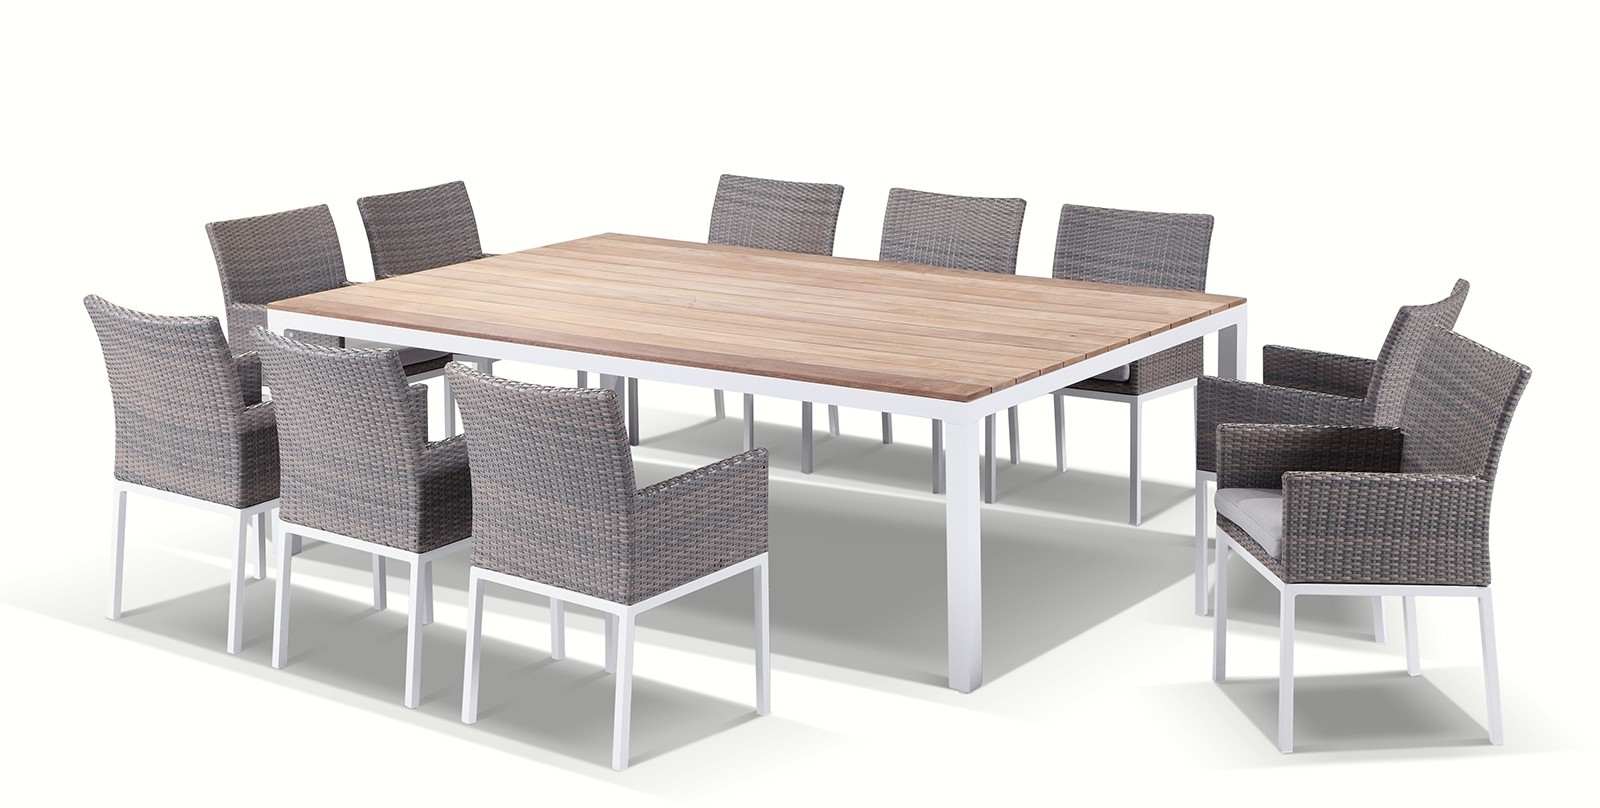 10 Seater Dining Tables And Chairs Within Most Current Tuscany 10 Seater Teak And Aluminium Dining Setting (Gallery 9 of 25)